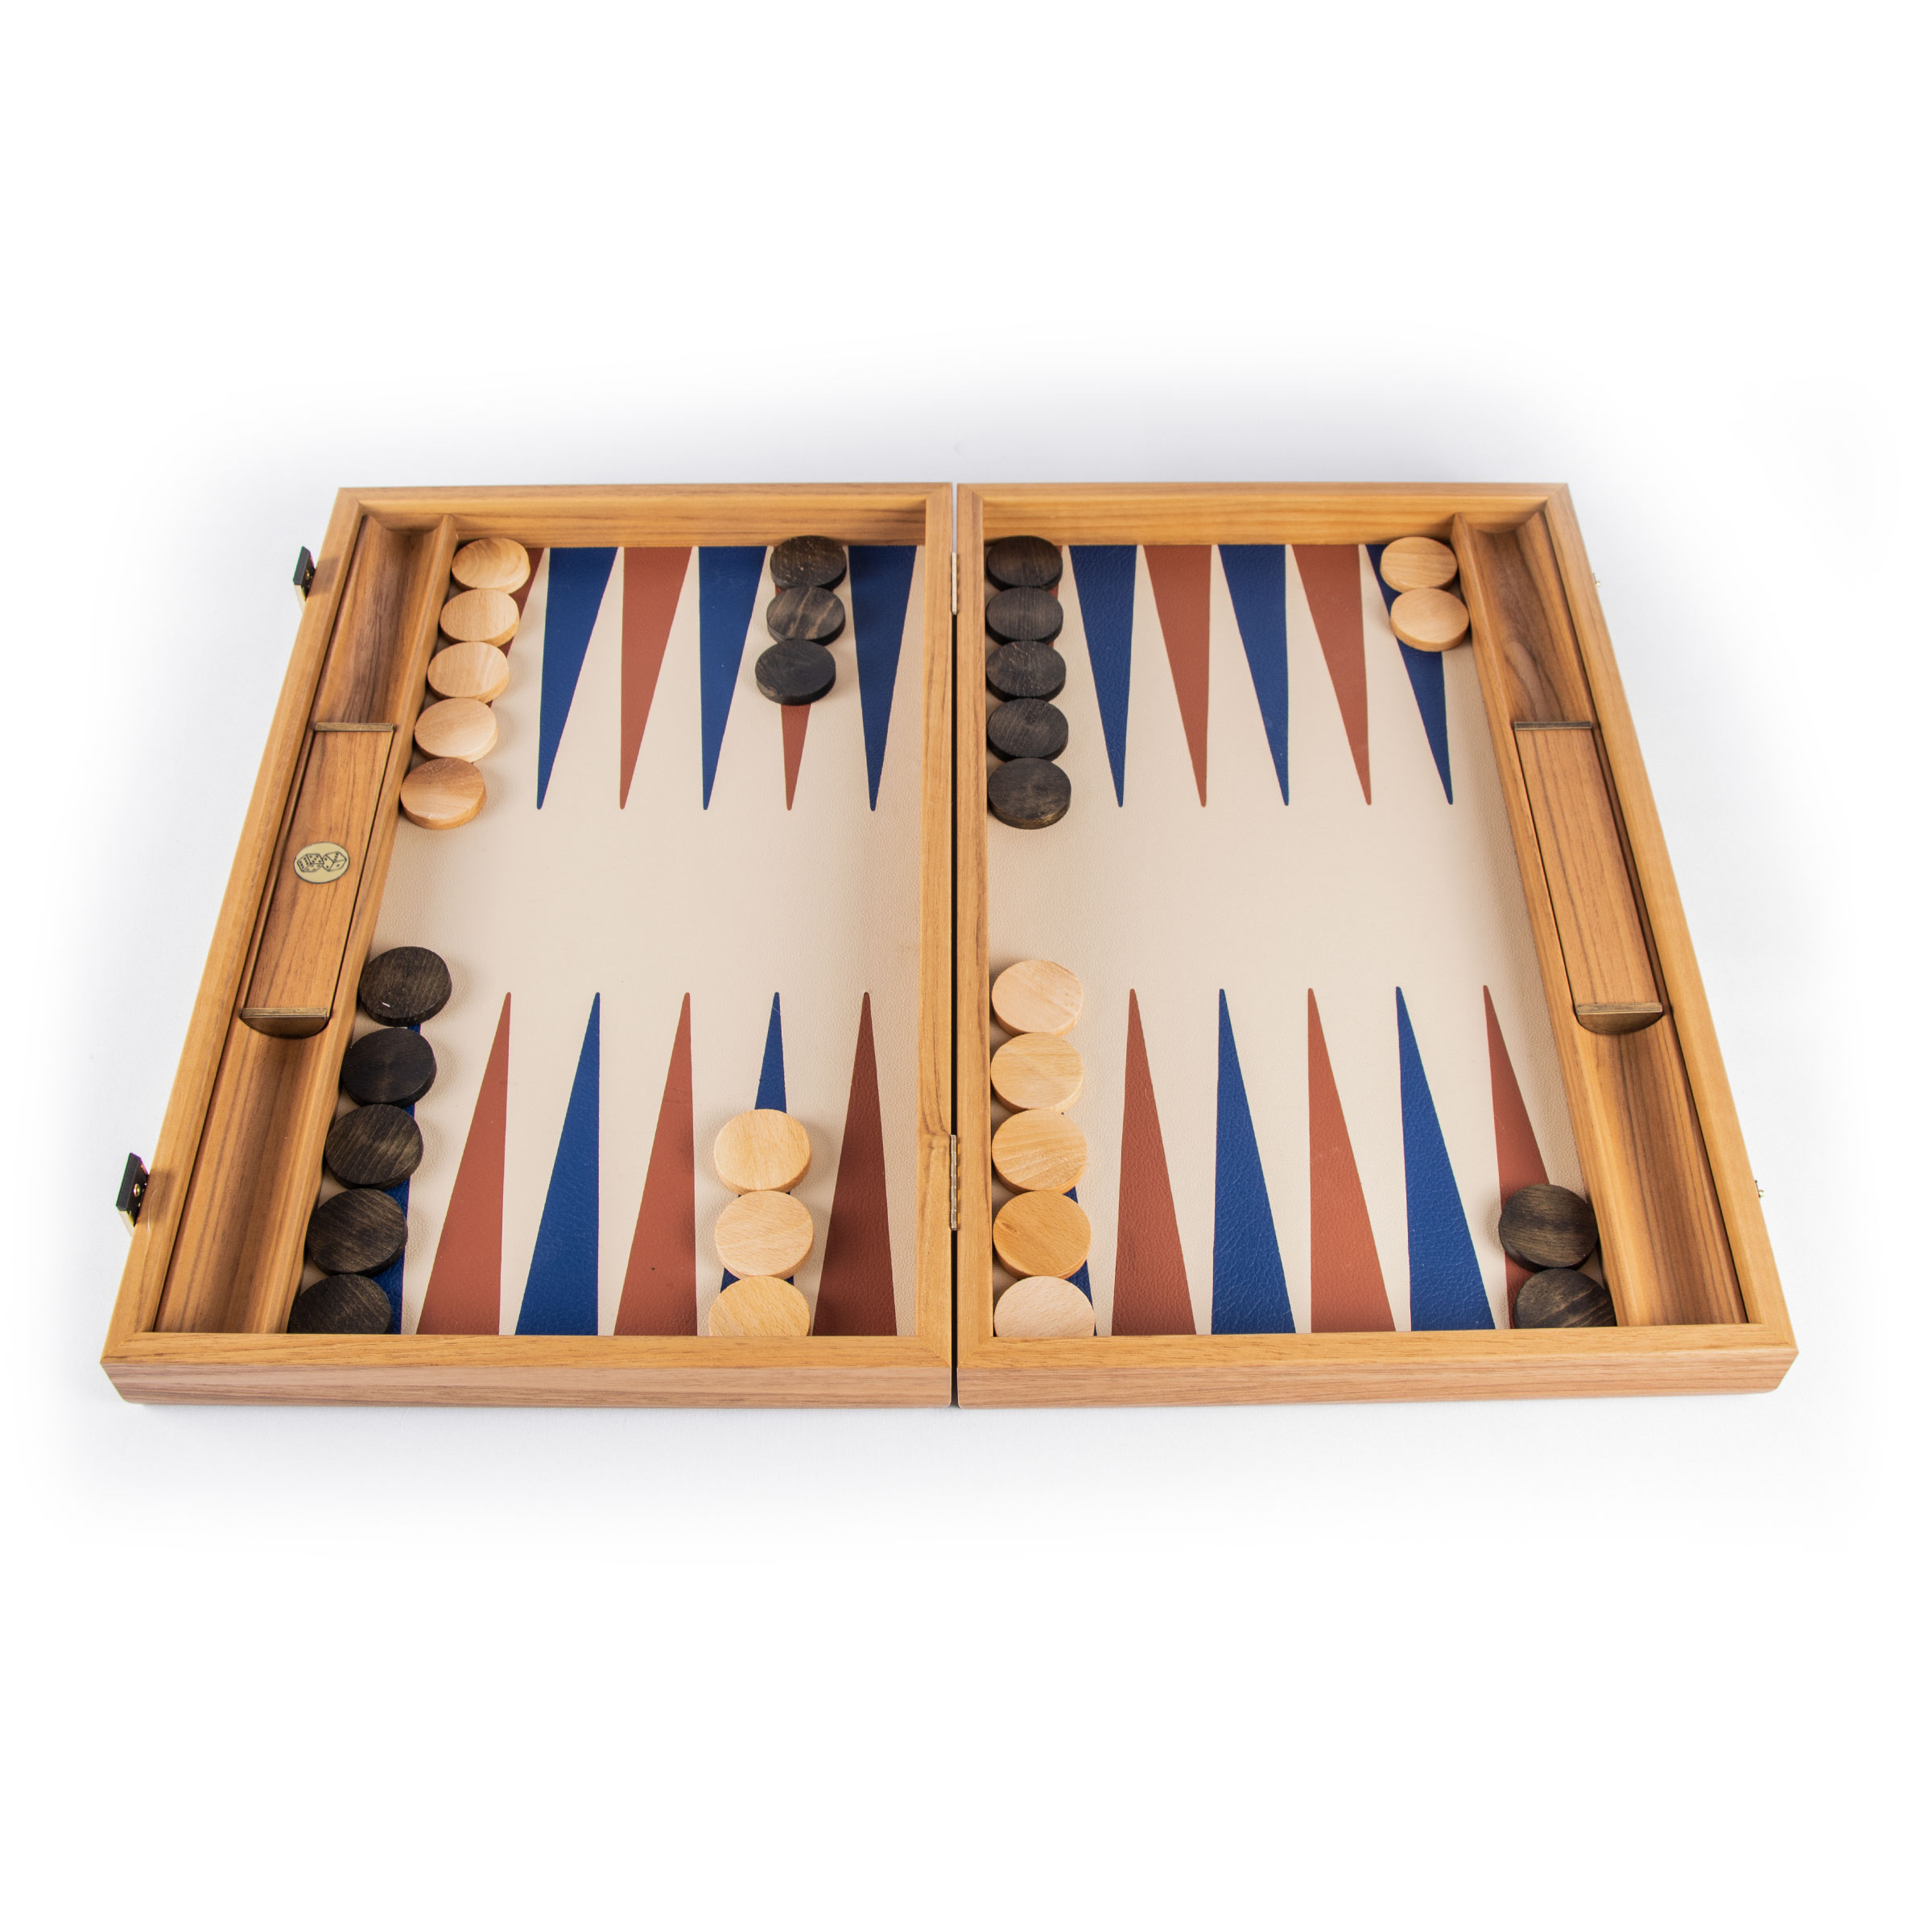 19 inch tournament backgammon with blue and orange points